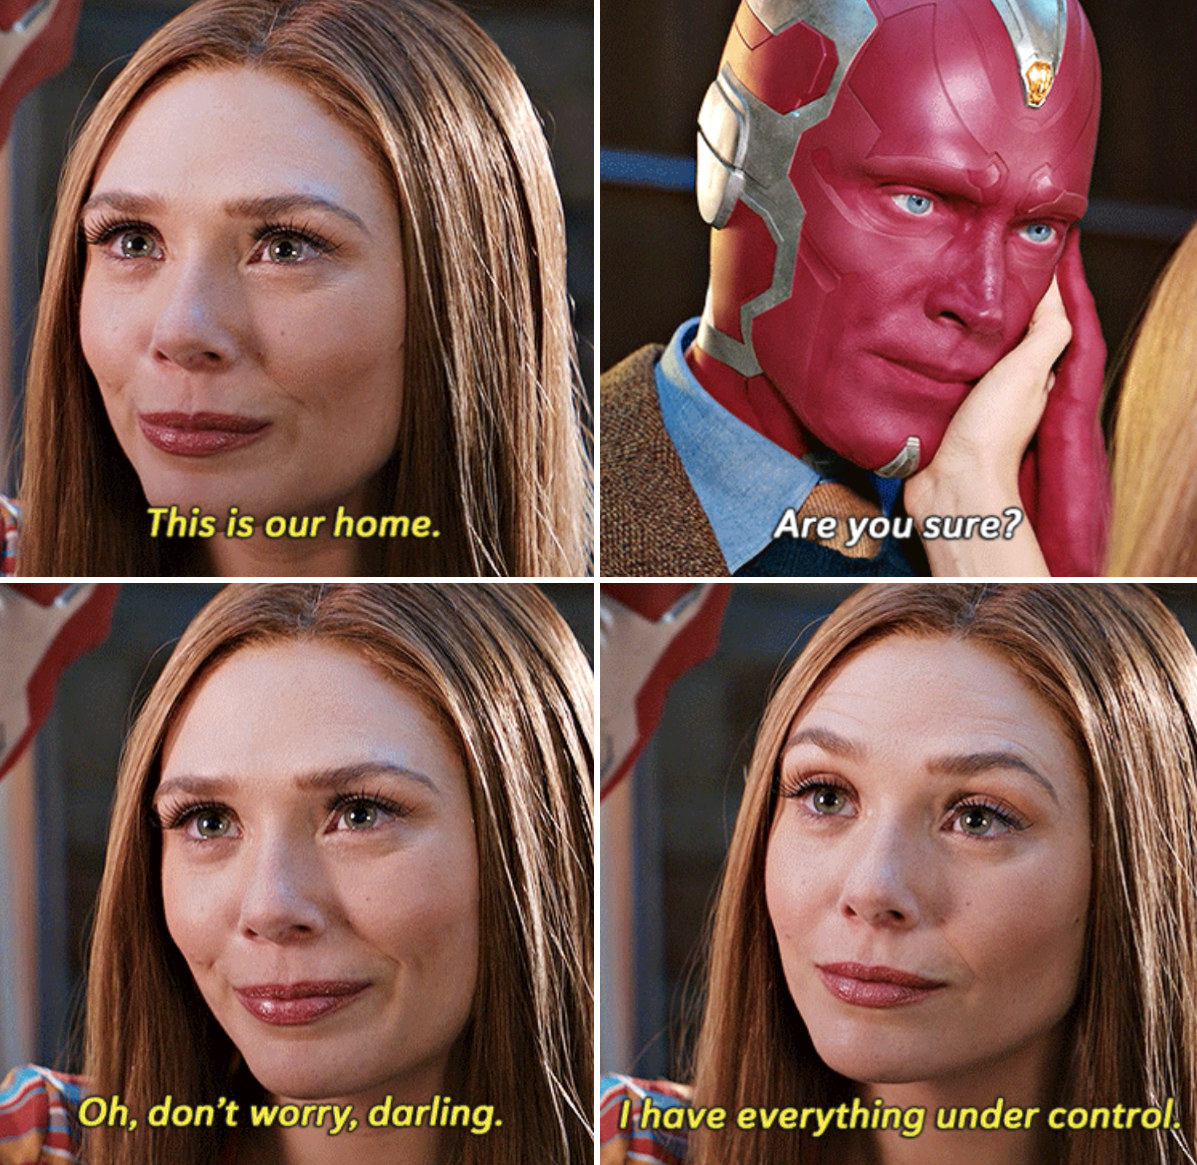 Wanda telling vision that this is their home, and she has everything under control